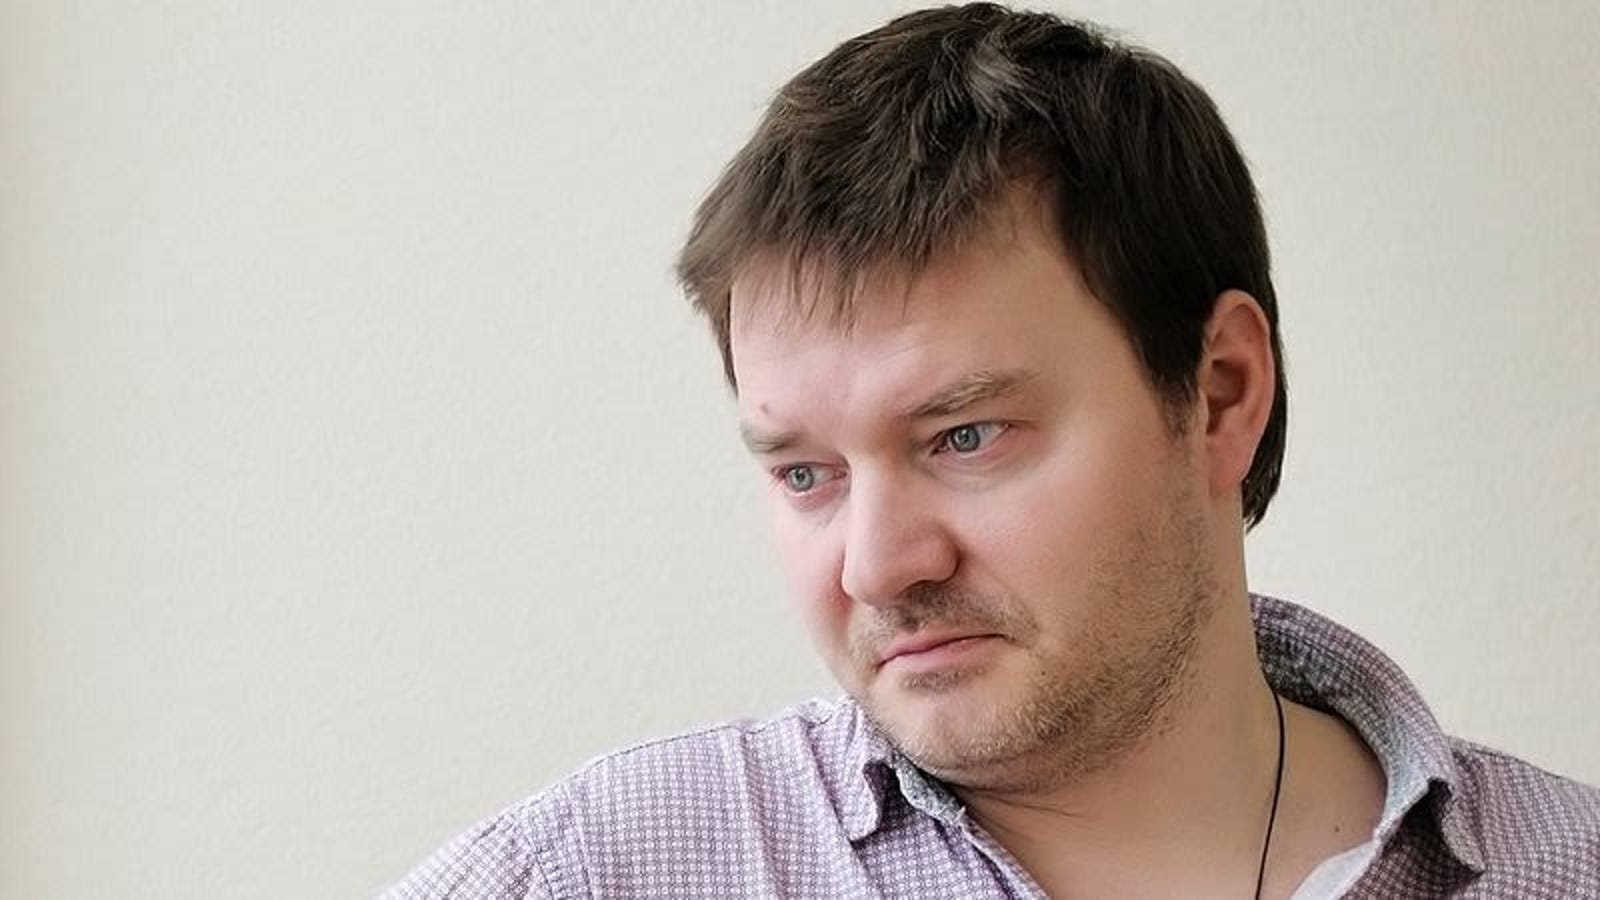 Man Embarrassed Thinking About Every Opinion He's Ever Articulated